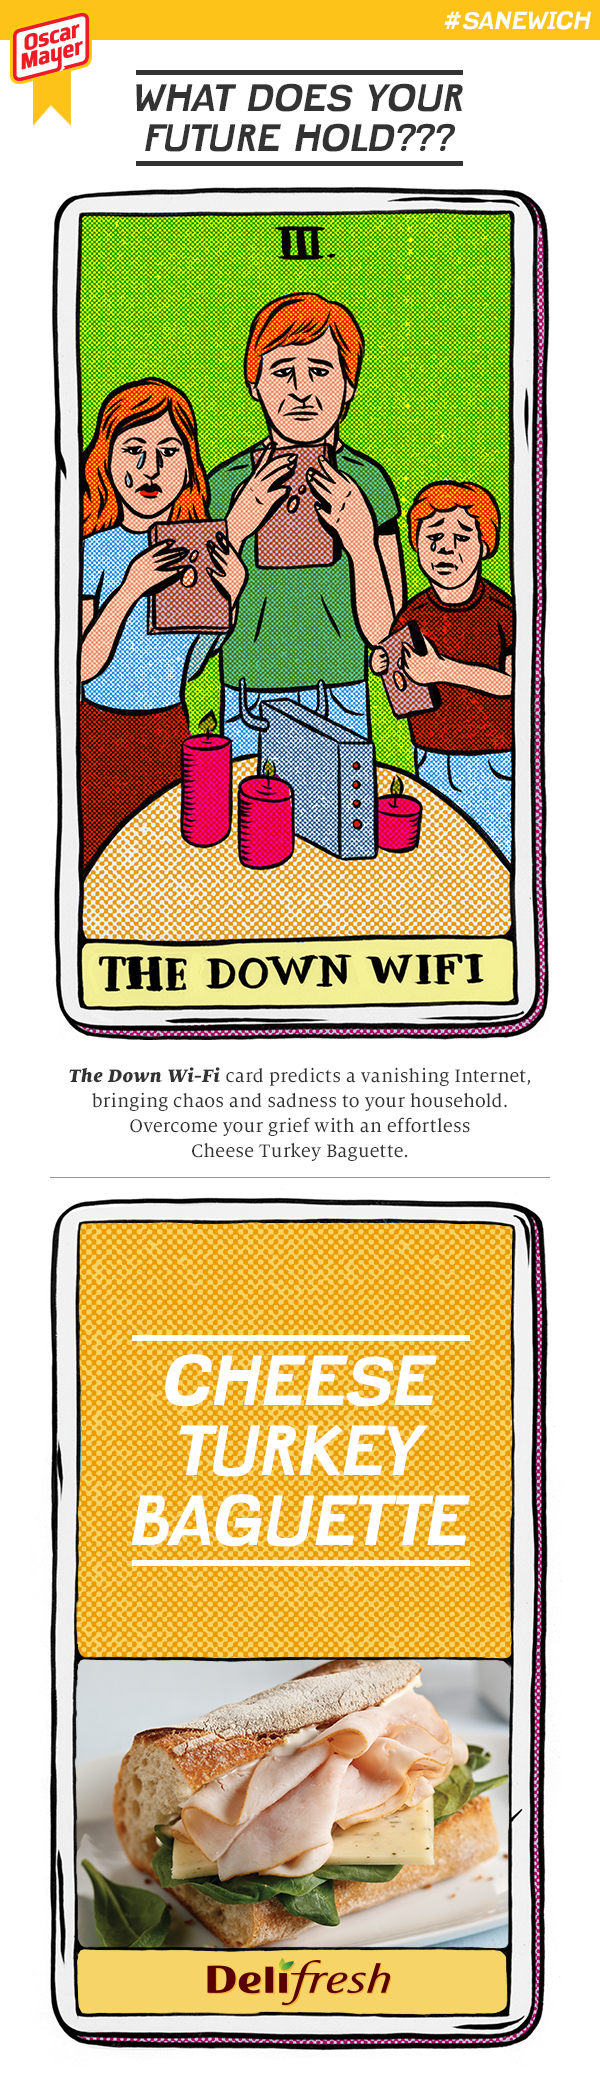 OM_Sanewich_Pin_The_Down_Wi-Fi